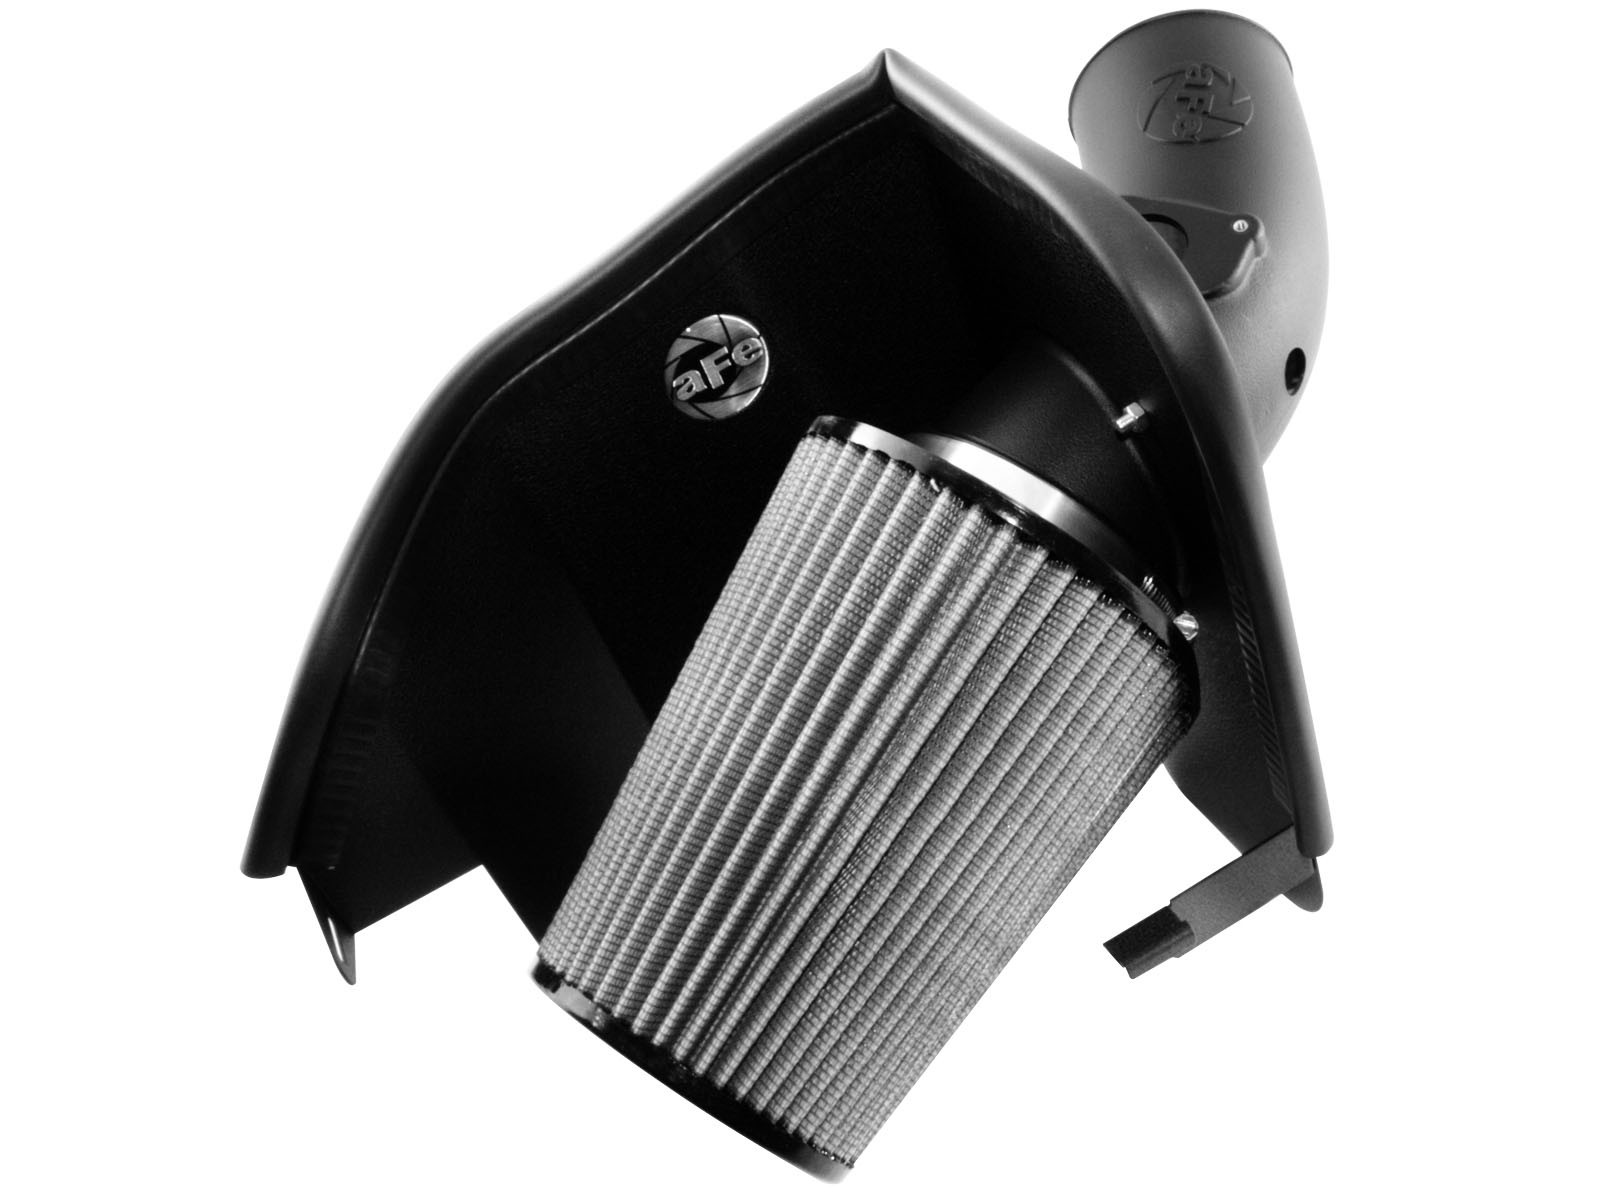 aFe POWER 51-30392 Magnum FORCE Stage-2 Pro DRY S Cold Air Intake System